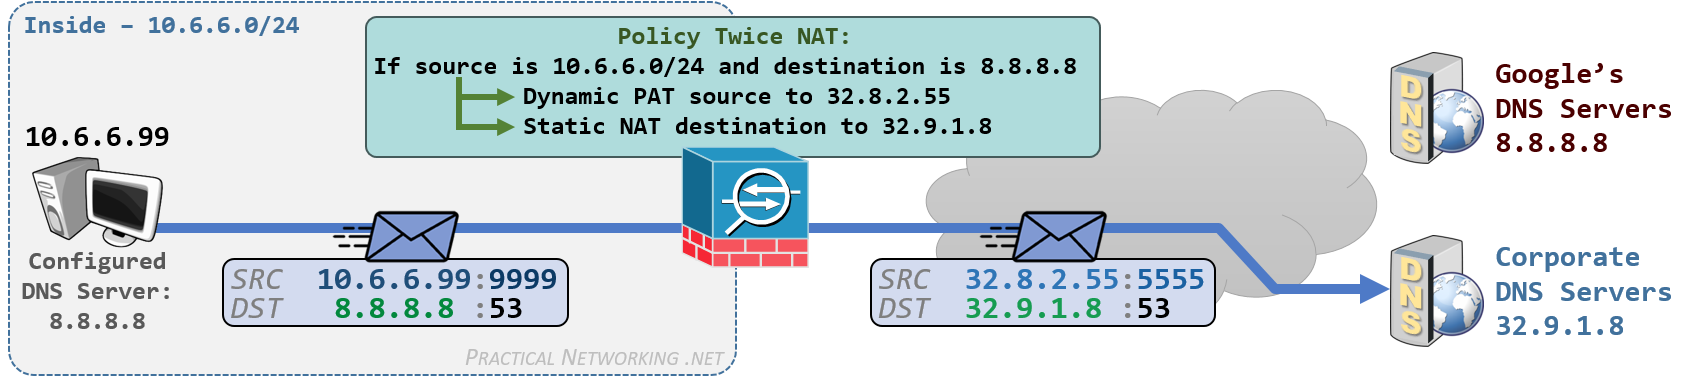 Cisco ASA NAT - Configuring Twice NAT with Manual NAT